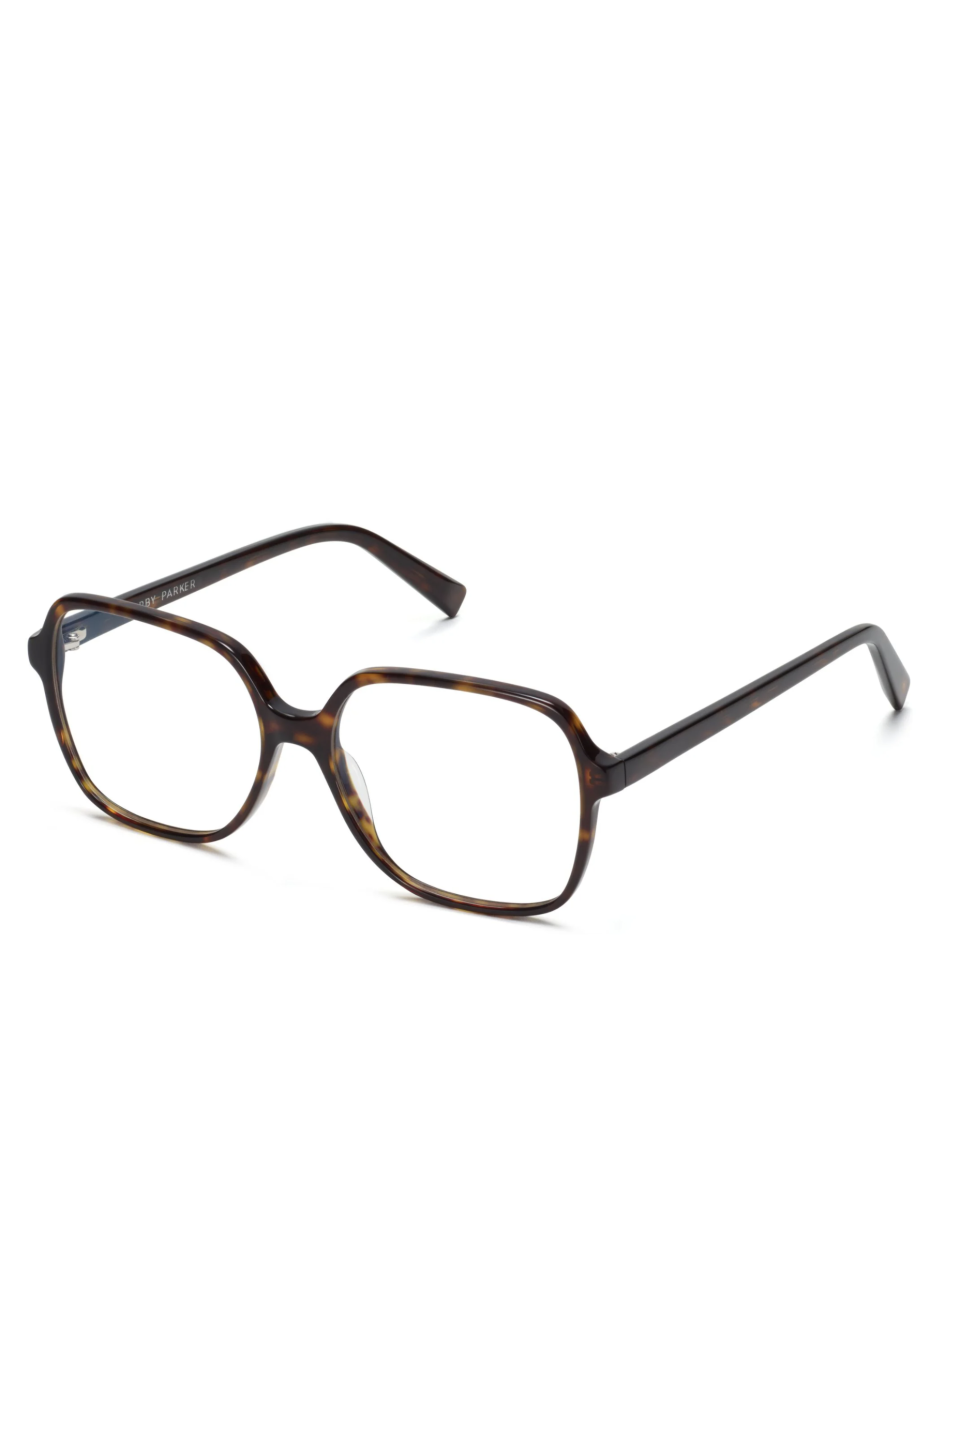 "<p><strong>Warby Parker</strong></p><p><strong>$95.00</strong></p><p><a href=""https://go.redirectingat.com?id=74968X1596630&url=https%3A%2F%2Fwww.warbyparker.com%2Feyeglasses%2Fwomen%2Falston%2Fcognac-tortoise&sref=https%3A%2F%2Fwww.marieclaire.com%2Fhome%2Fg35682345%2Fwork-from-home-essentials%2F"" rel=""nofollow noopener"" target=""_blank"" data-ylk=""slk:SHOP IT"" class=""link rapid-noclick-resp"">SHOP IT</a></p><p>If you feel like your eyes have been betraying you lately, <a href=""https://nymag.com/intelligencer/2021/01/what-has-the-pandemic-done-to-our-eyes.html"" rel=""nofollow noopener"" target=""_blank"" data-ylk=""slk:you're not alone"" class=""link rapid-noclick-resp"">you're not alone</a>. A pair of blue light-blocking frames from Warby Parker can help eliminate the strain on your eyes from excessive screen time. </p>"